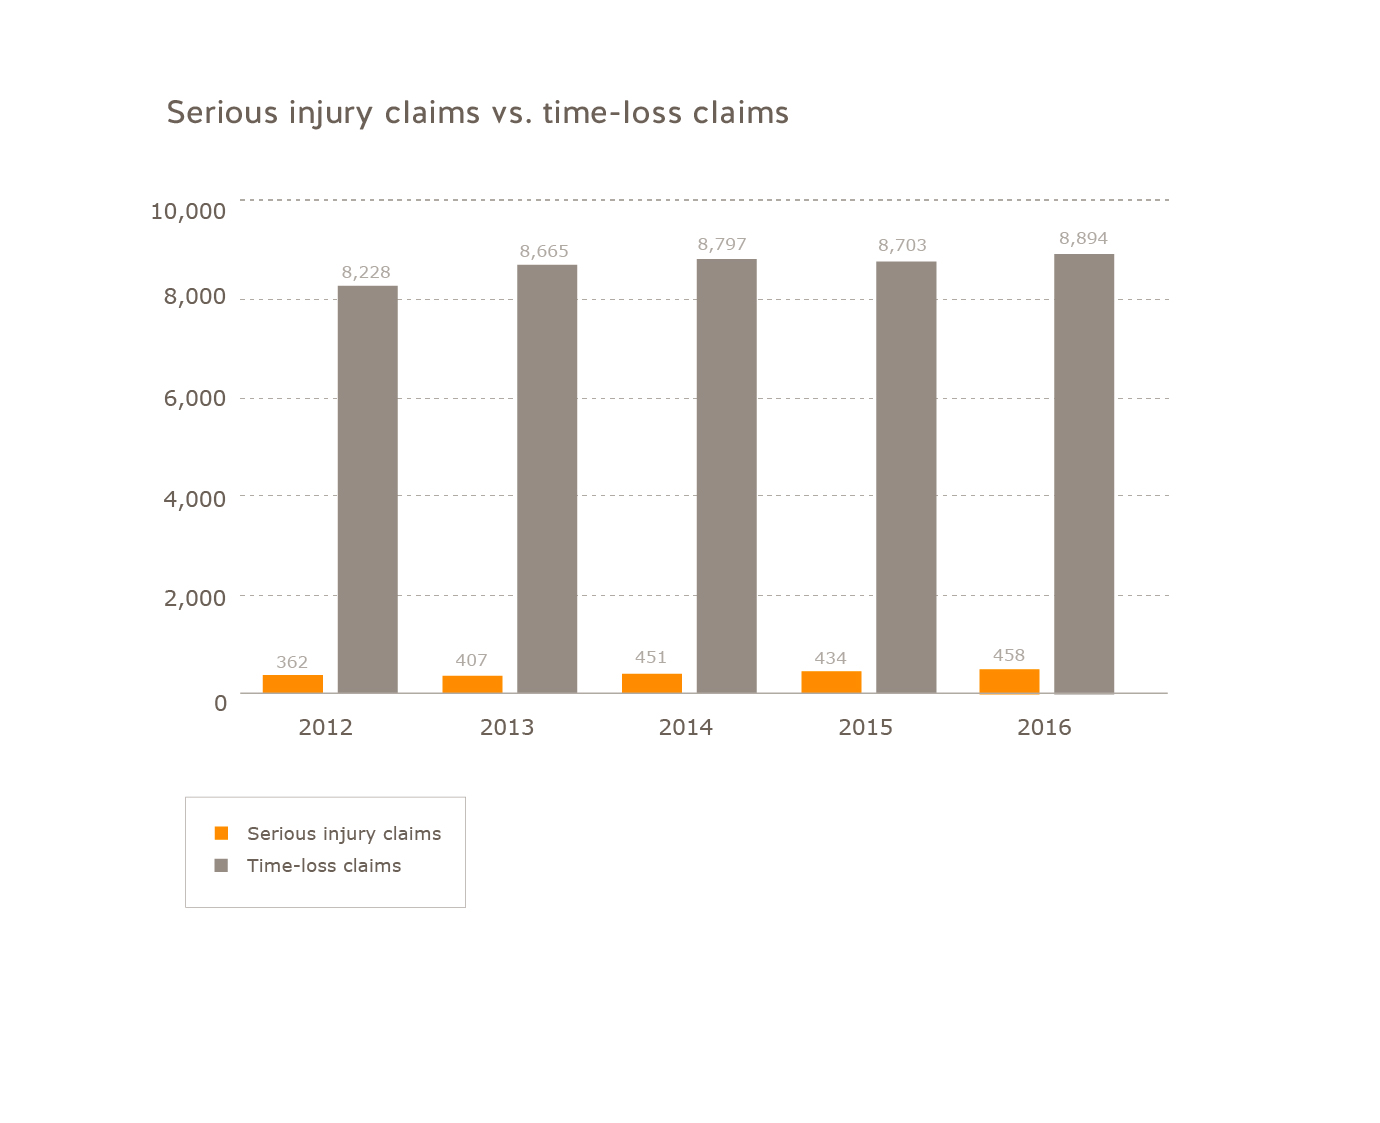 Health care serious injury claims vs. time-loss claims (2012 to 2016). Serious injury claims: 2012=362; 2013=407; 2014=451; 2015=434; 2016=458. Time-loss claims: 2012=8228, 2013=8665; 2014=8797; 2015=8703; 2016=8894